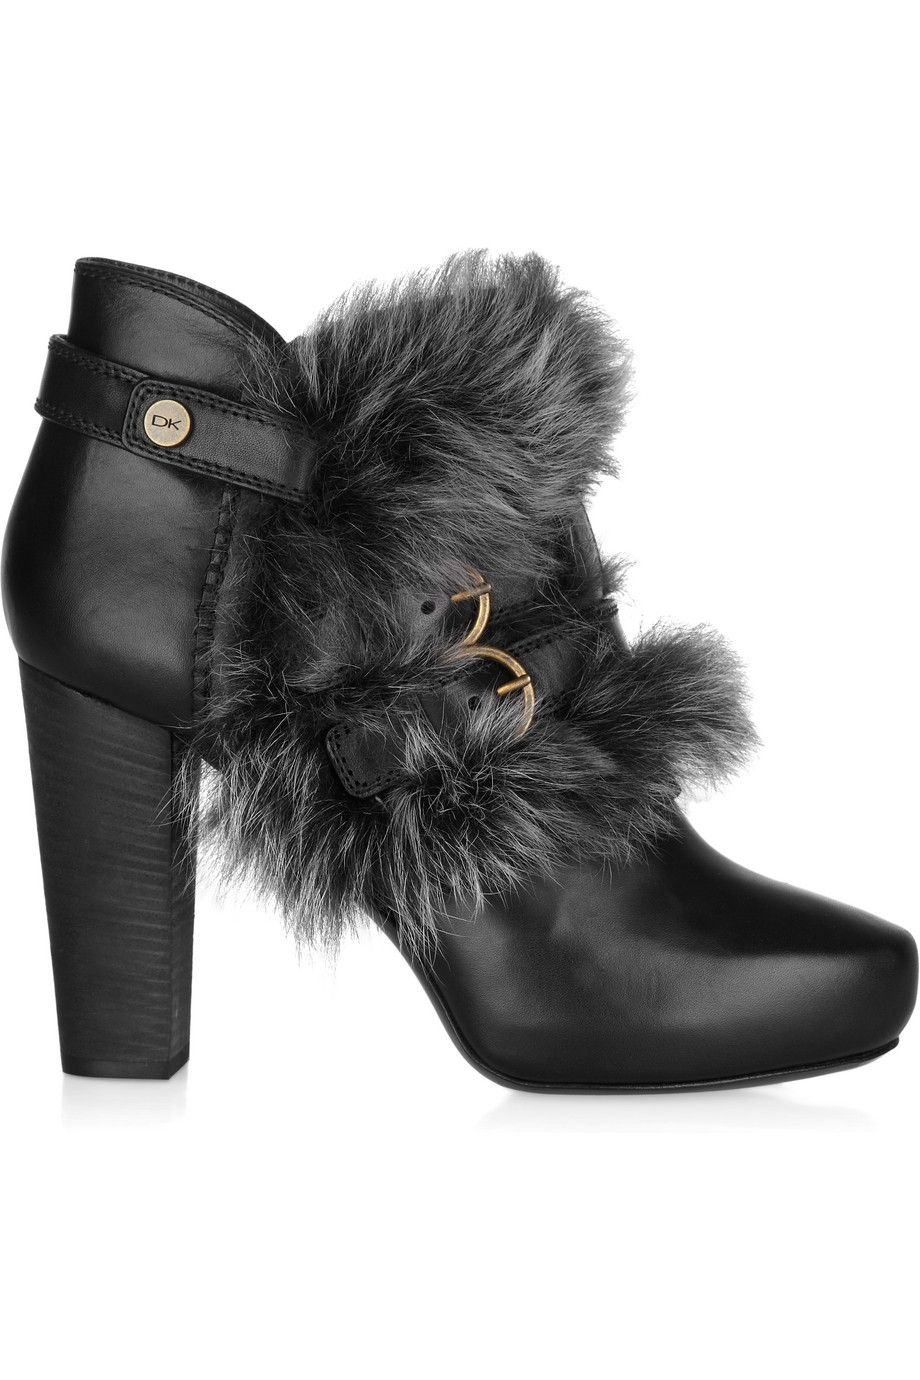 Shearling-trimmed leather ankle boots by Donna Karan